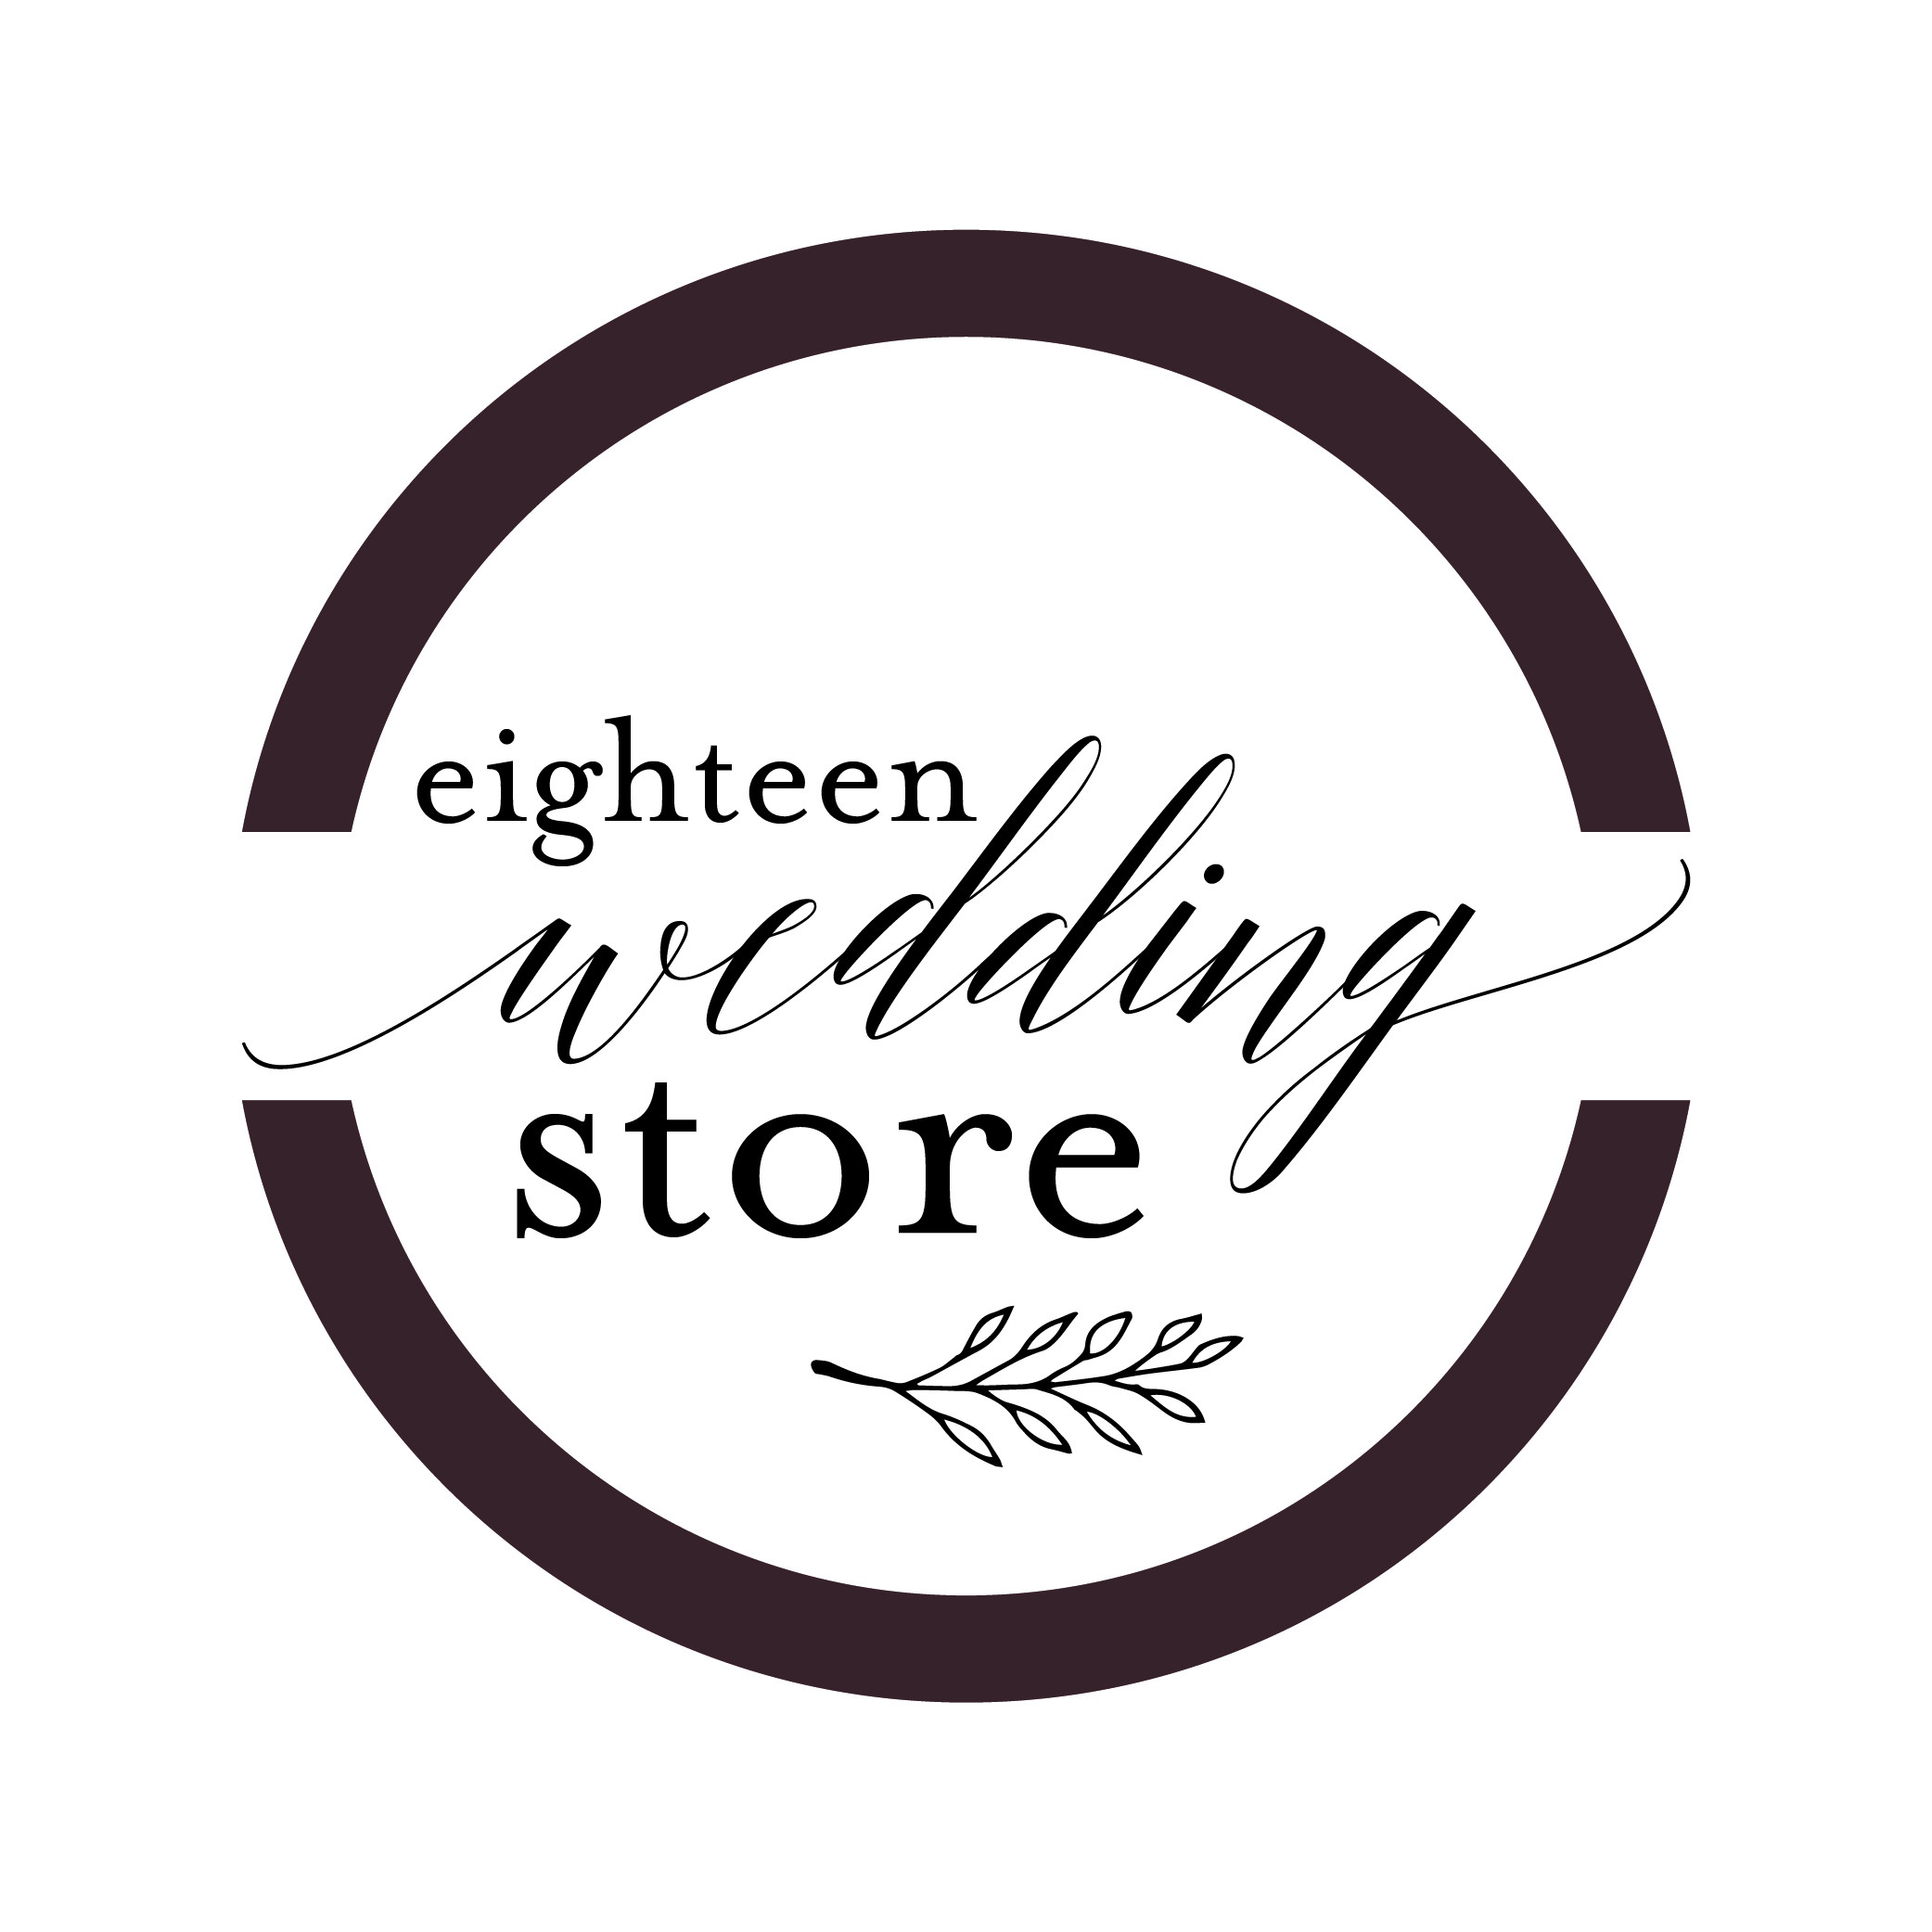 EighteenWeddingStore's profile picture